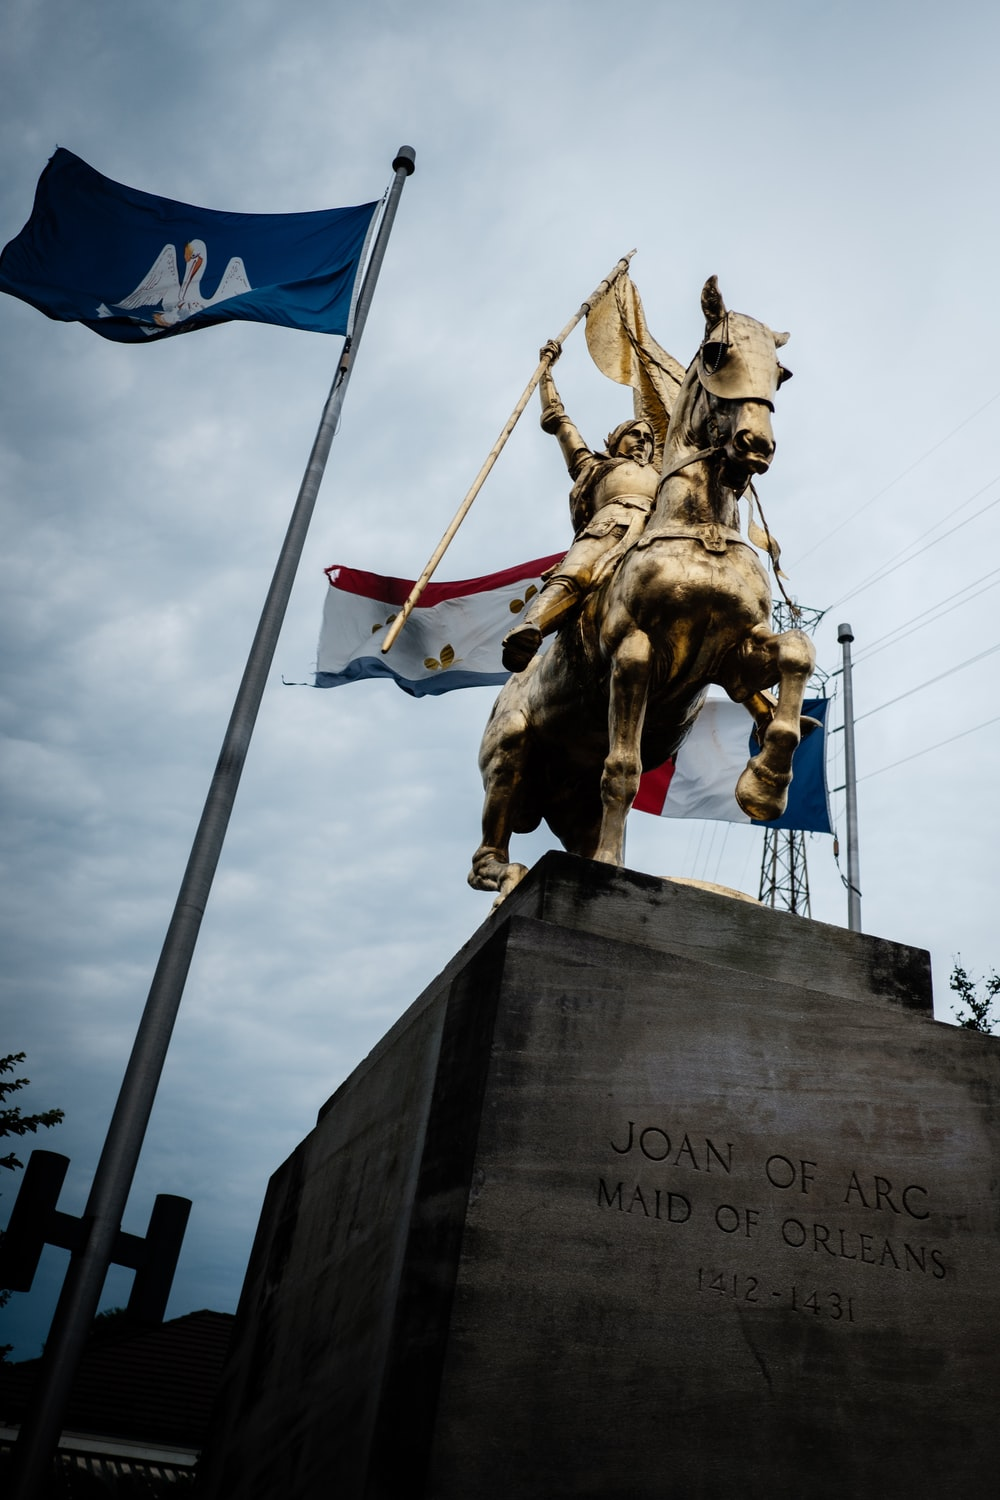 Joan of Arc Maid of Orleans statue